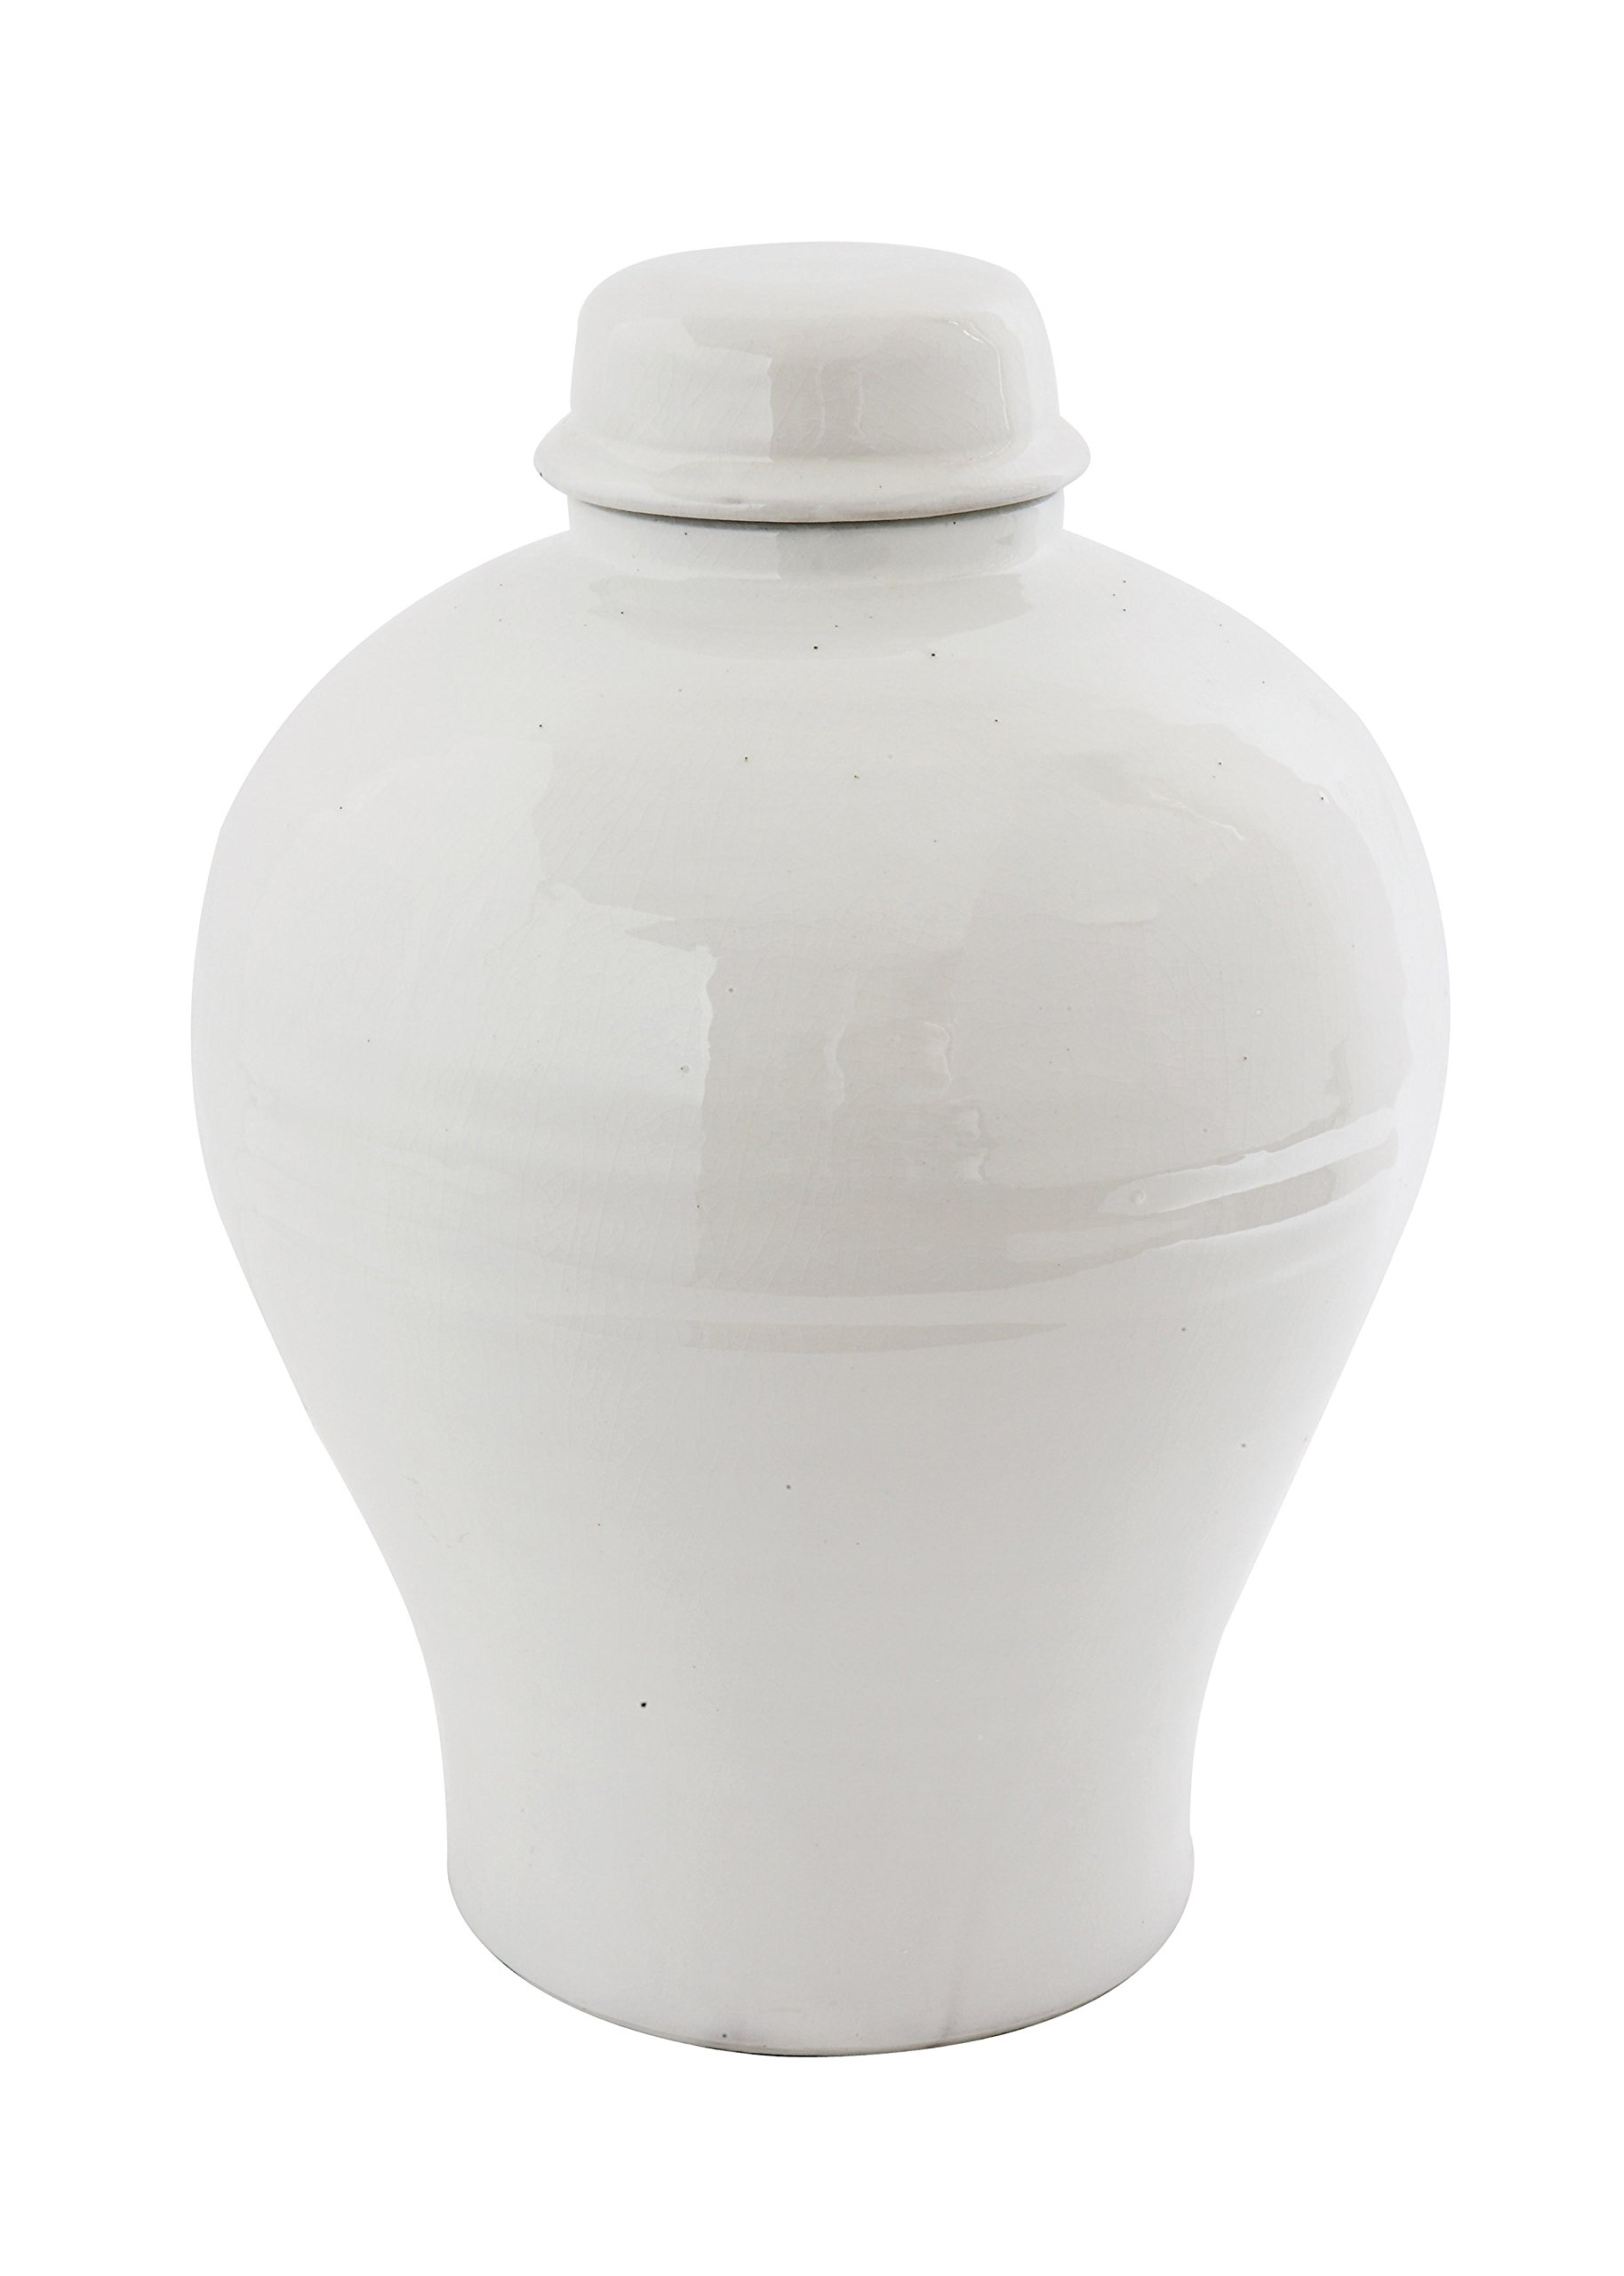 Creative Co-Op Large Round White Terracotta Cachepot, 14 Inch